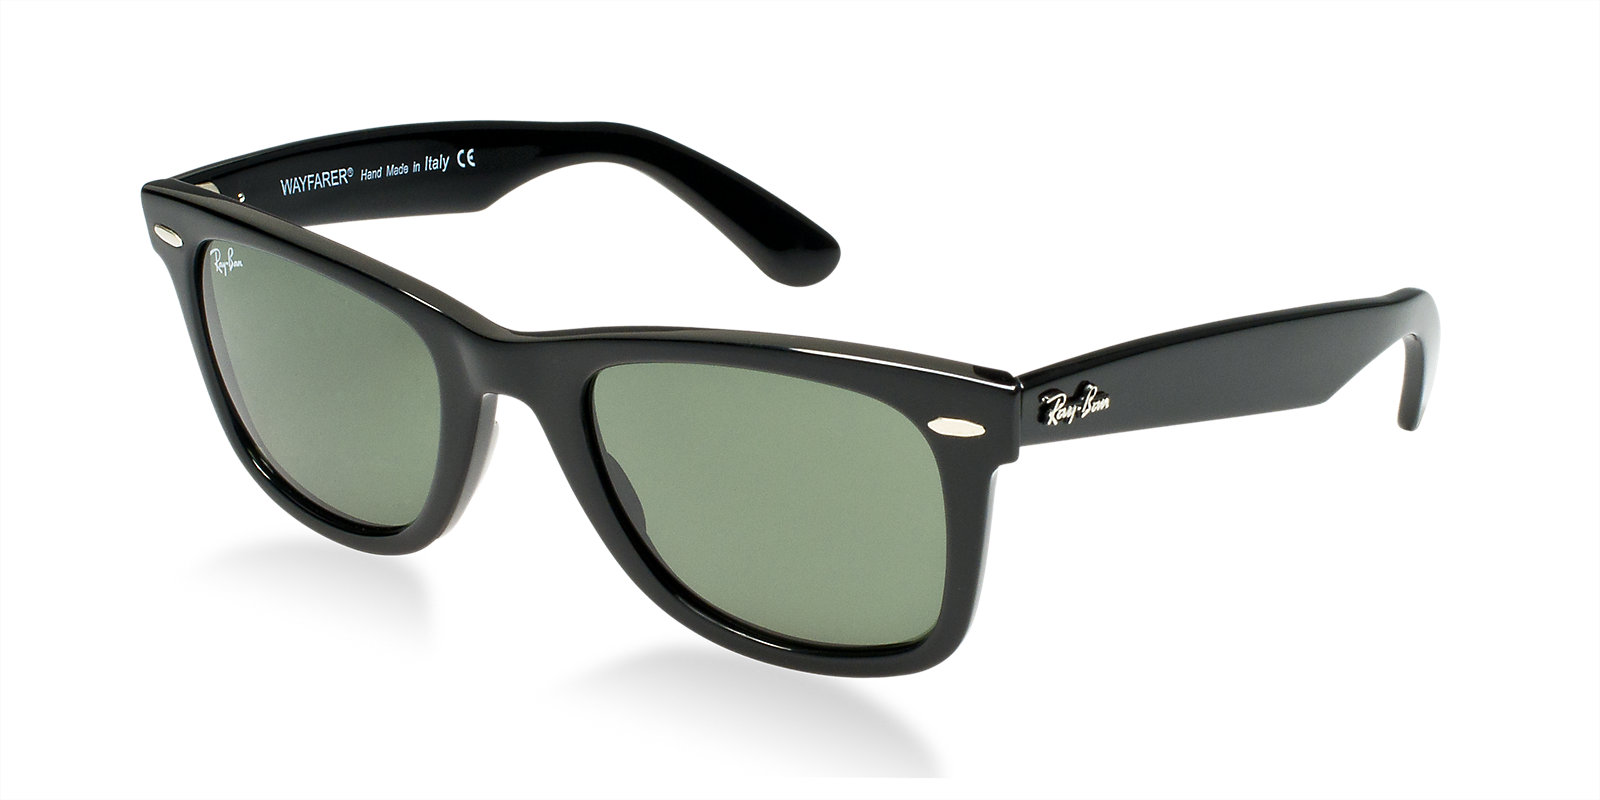 49c5b31b87b80 Previous  Next. Previous  Next. RAY-BAN RB2140 901 BLACK CLASSIC WAYFARER  SUNGLASSES